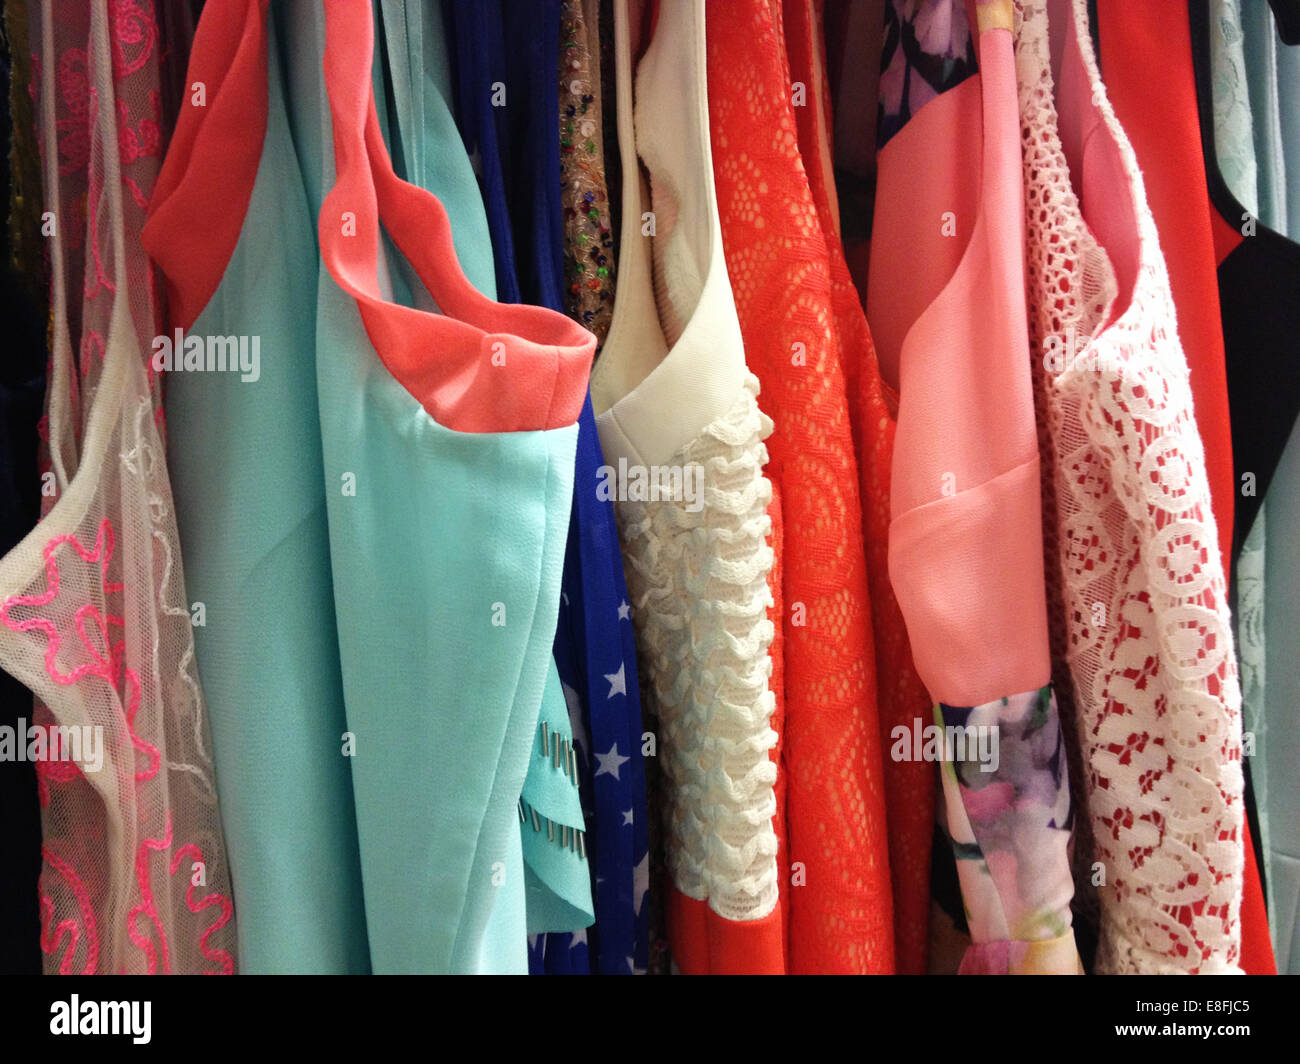 Woman's clothes hanging on rail - Stock Image